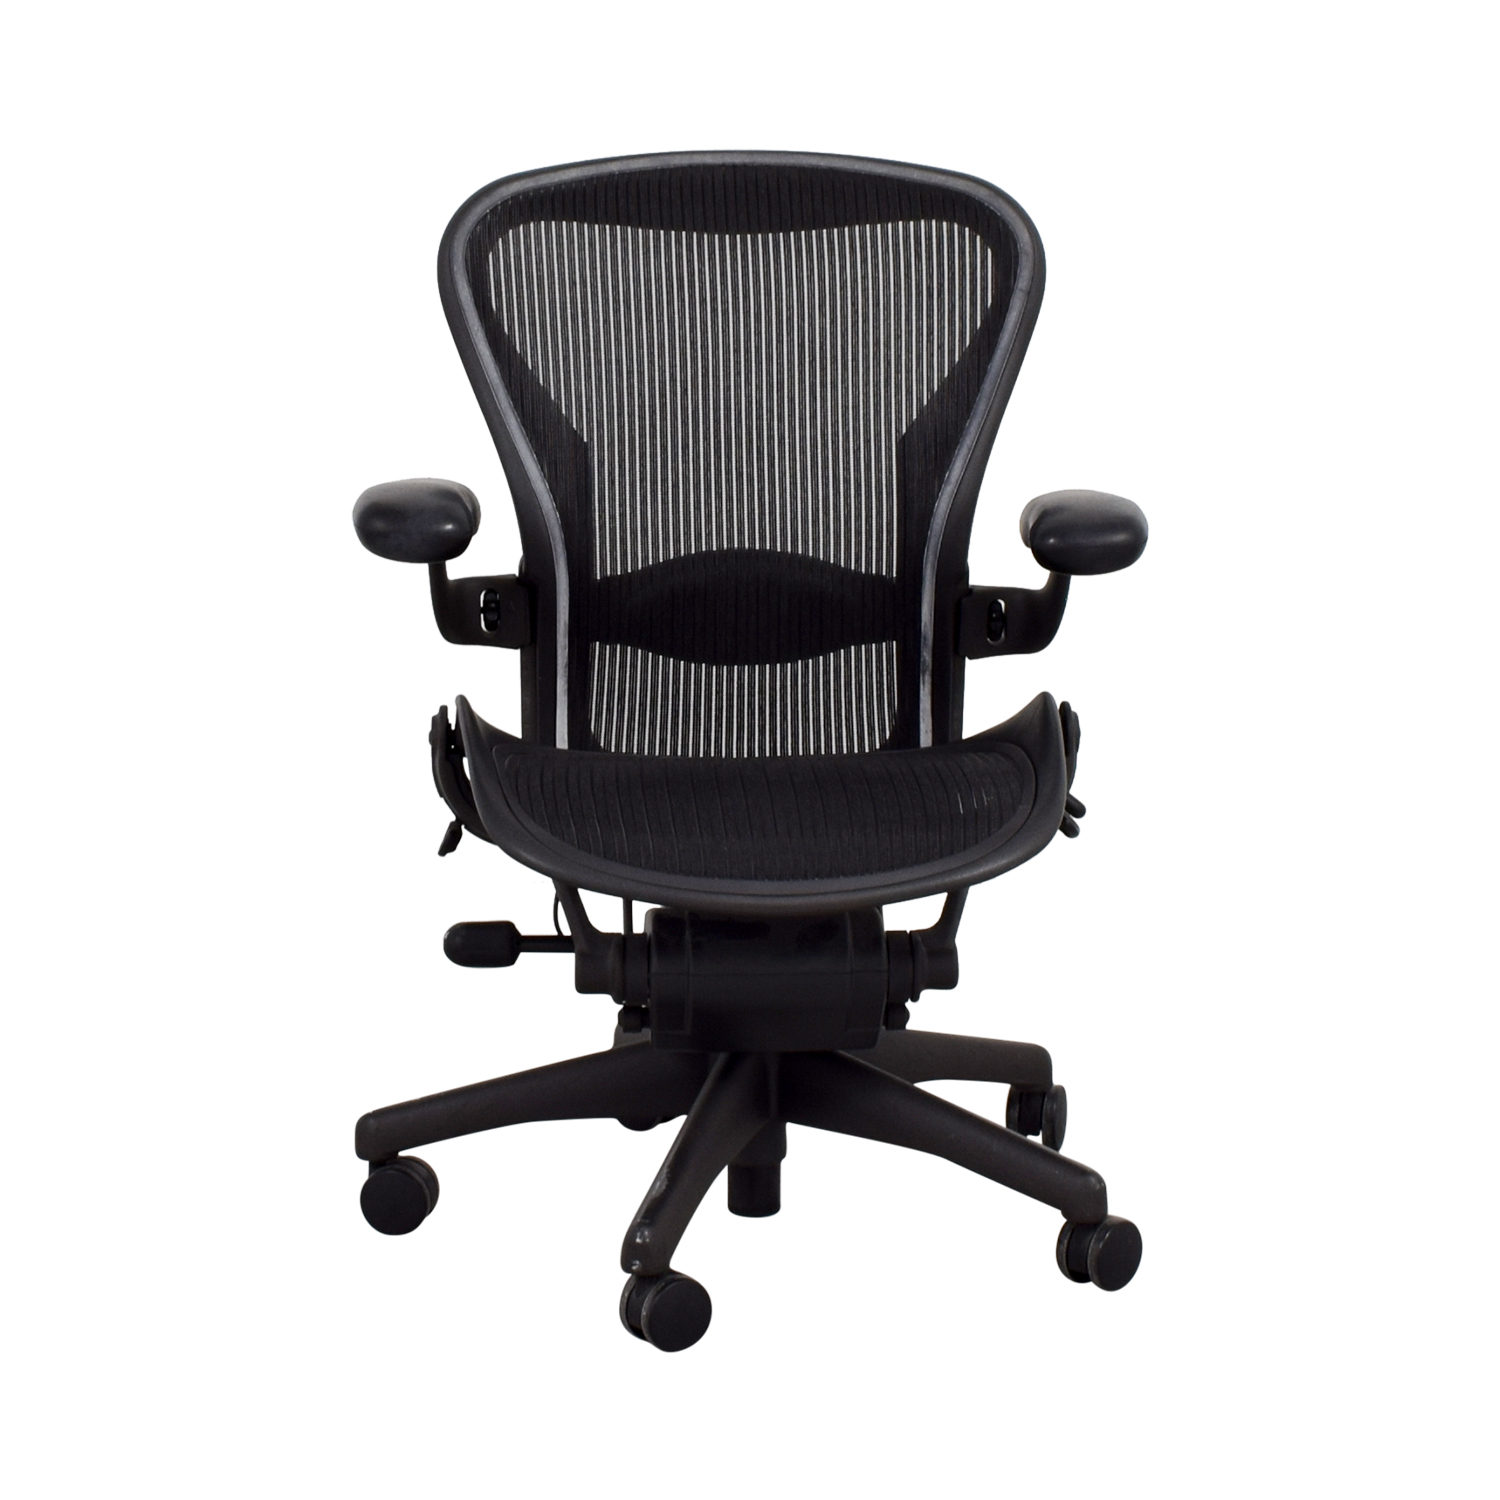 Herman Miller Herman Miller Aeron Miller Black Desk Chair nyc